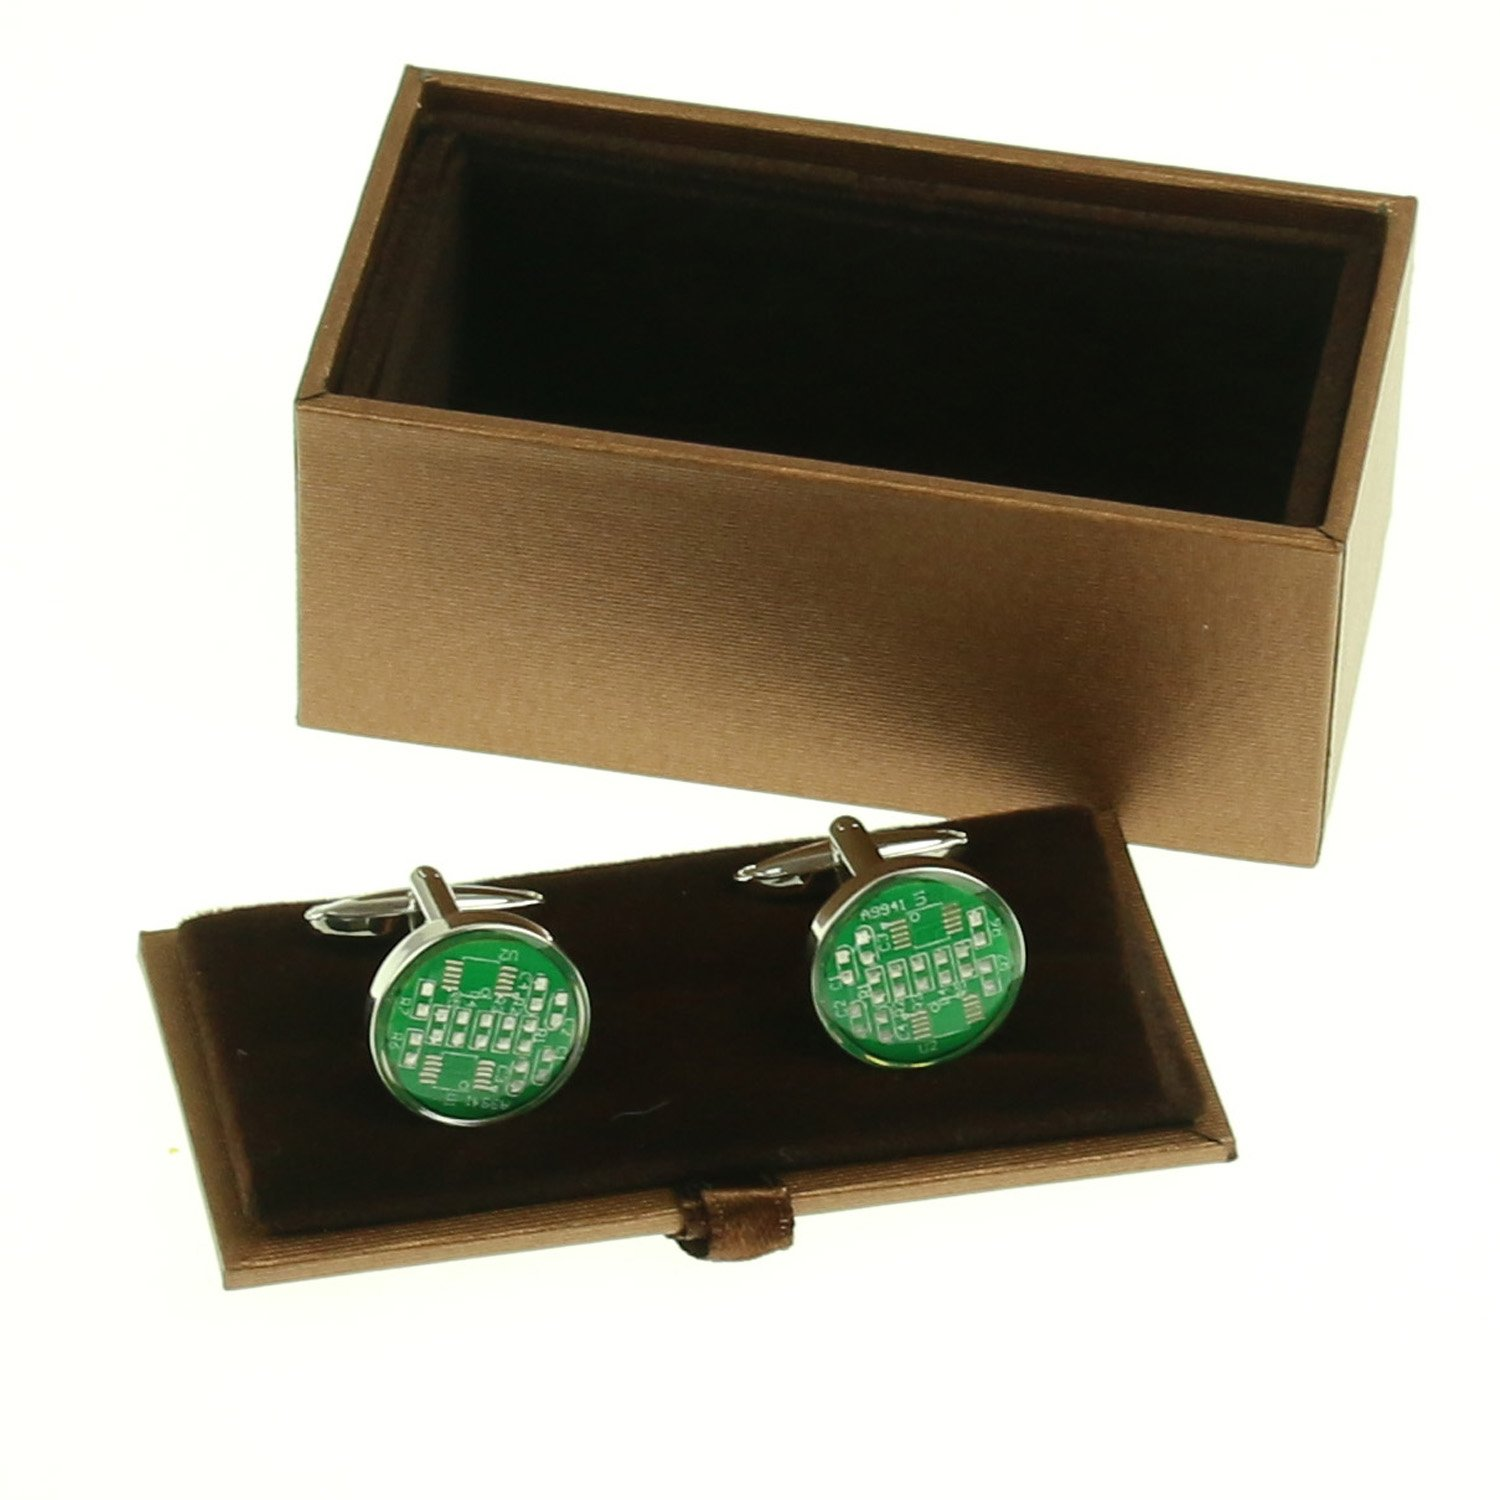 Lieomo Integrated Circuit Cuff Links Board Cufflinks Computer Chip For Men Women Boyfriend Christmas Gift With Box Jewelry